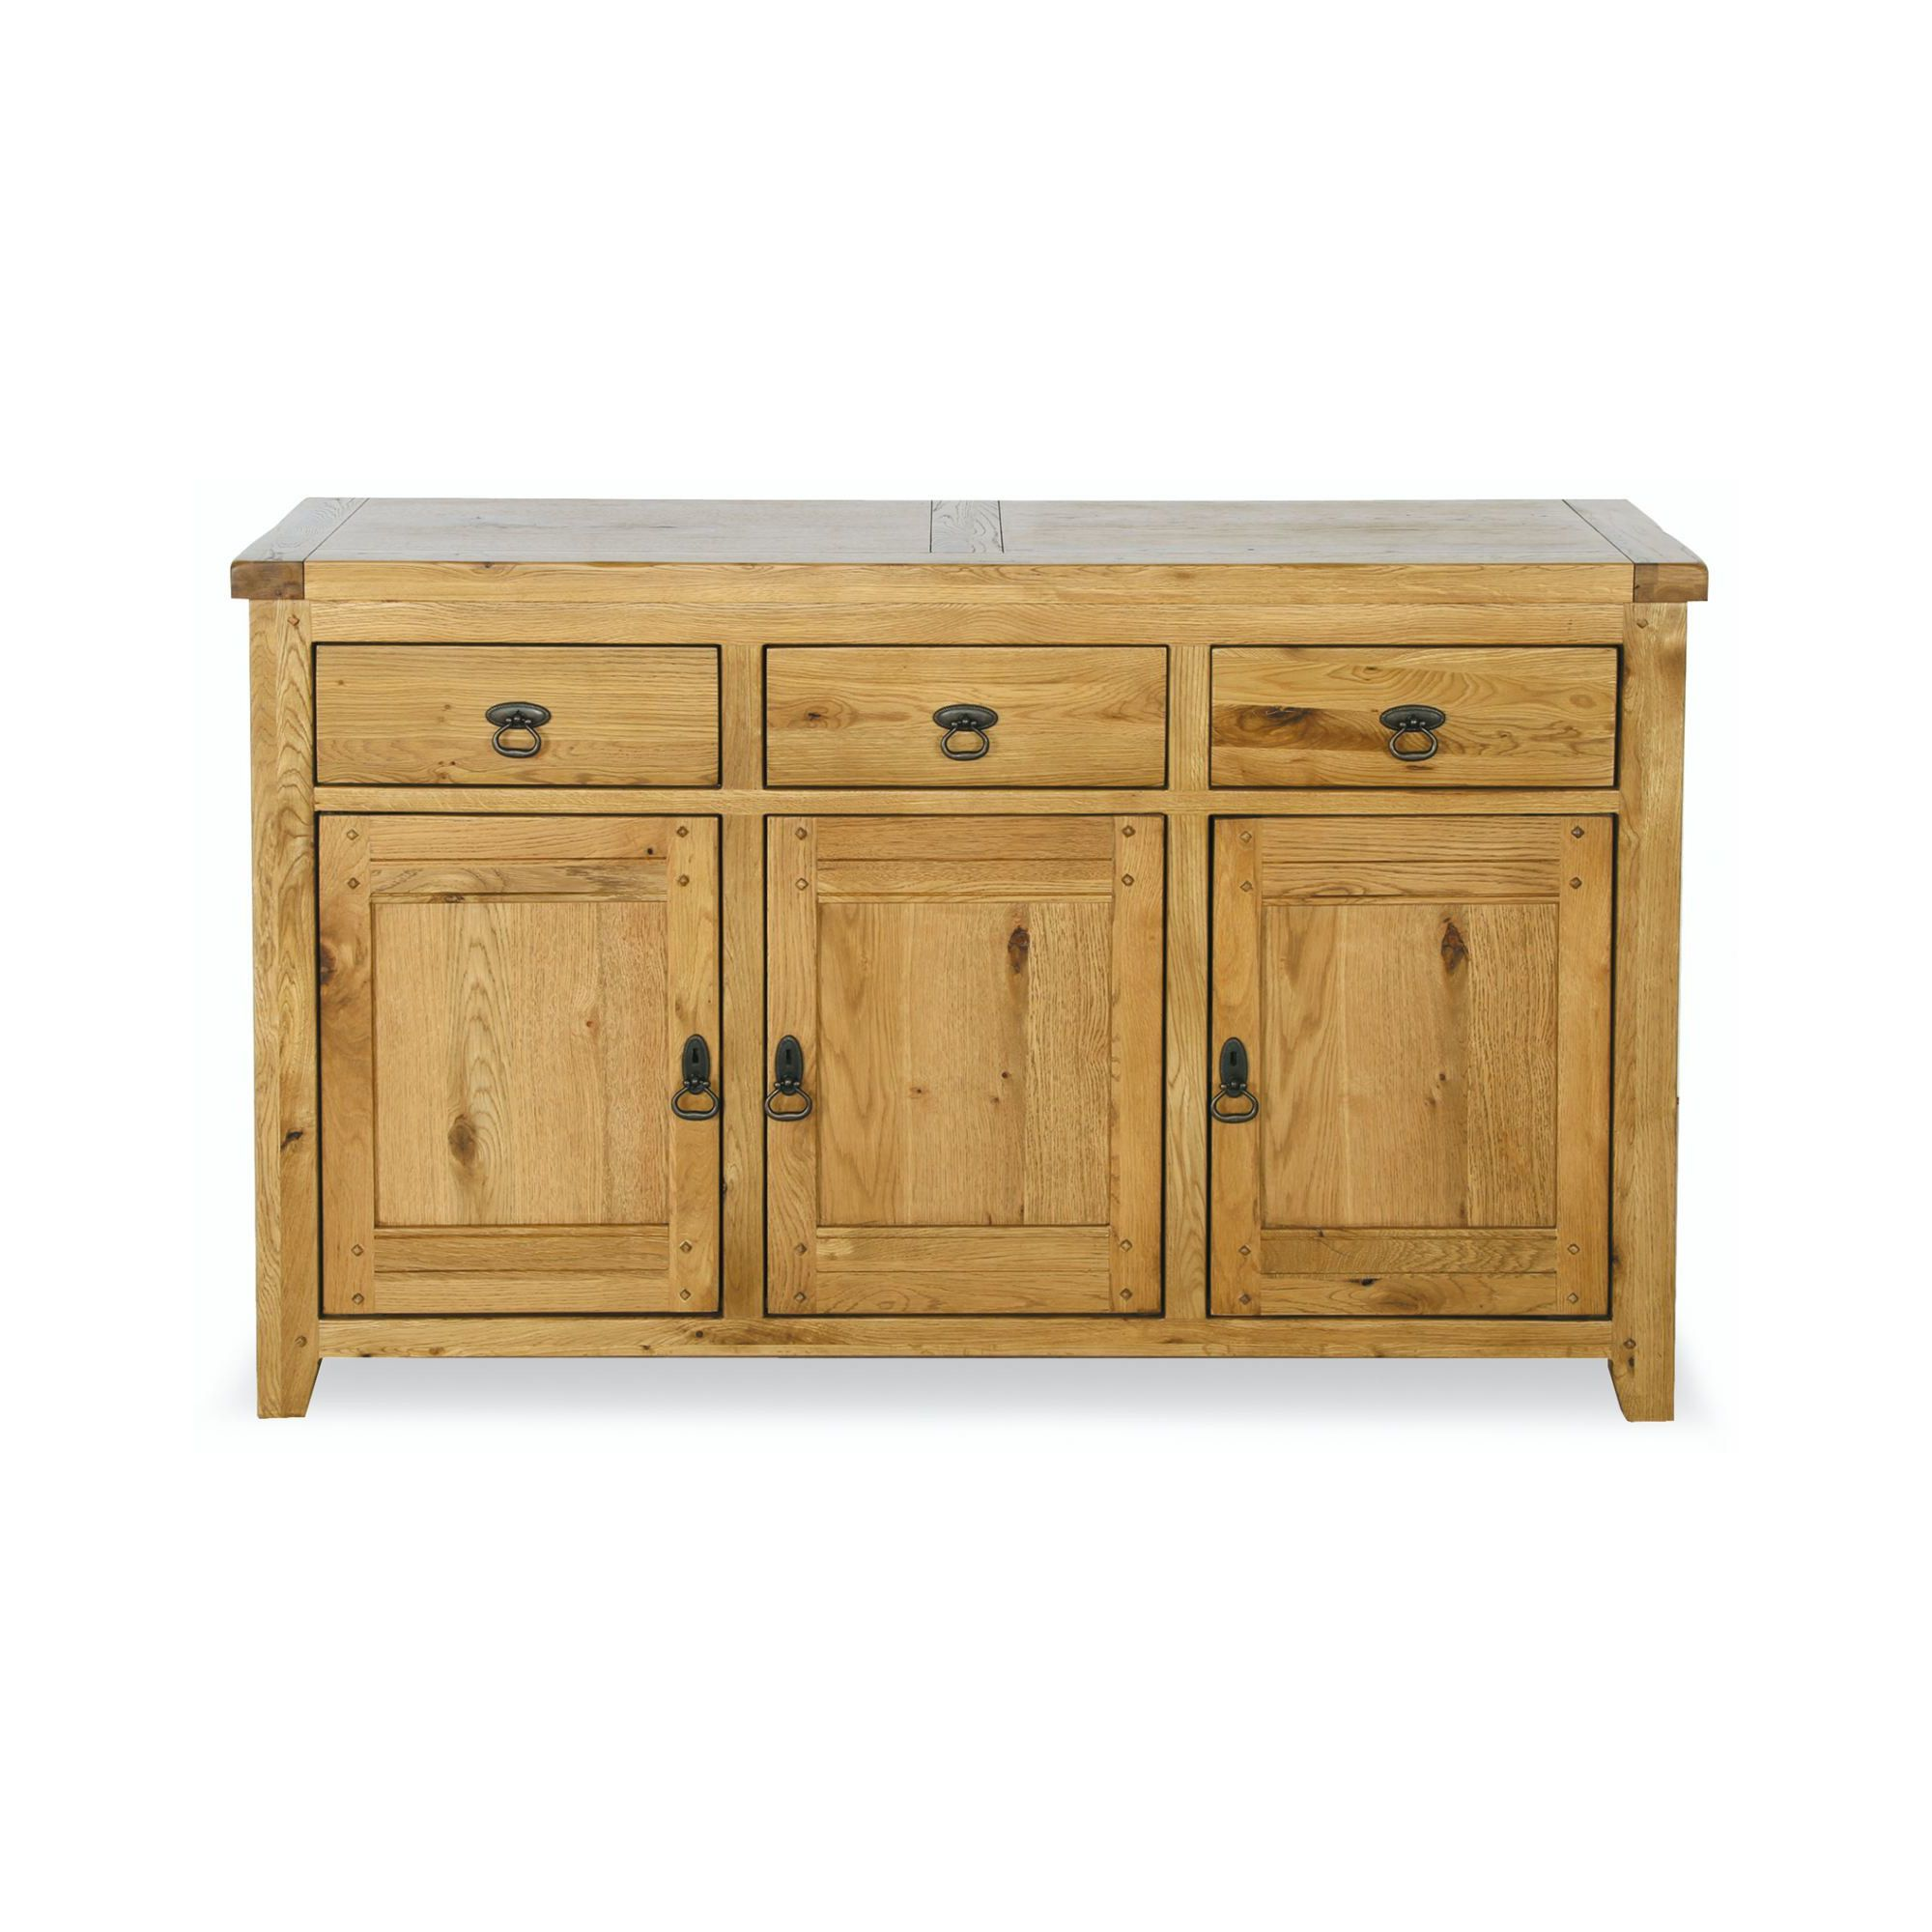 Kelburn Furniture Veneto Rustic Oak 3 Door Sideboard at Tesco Direct